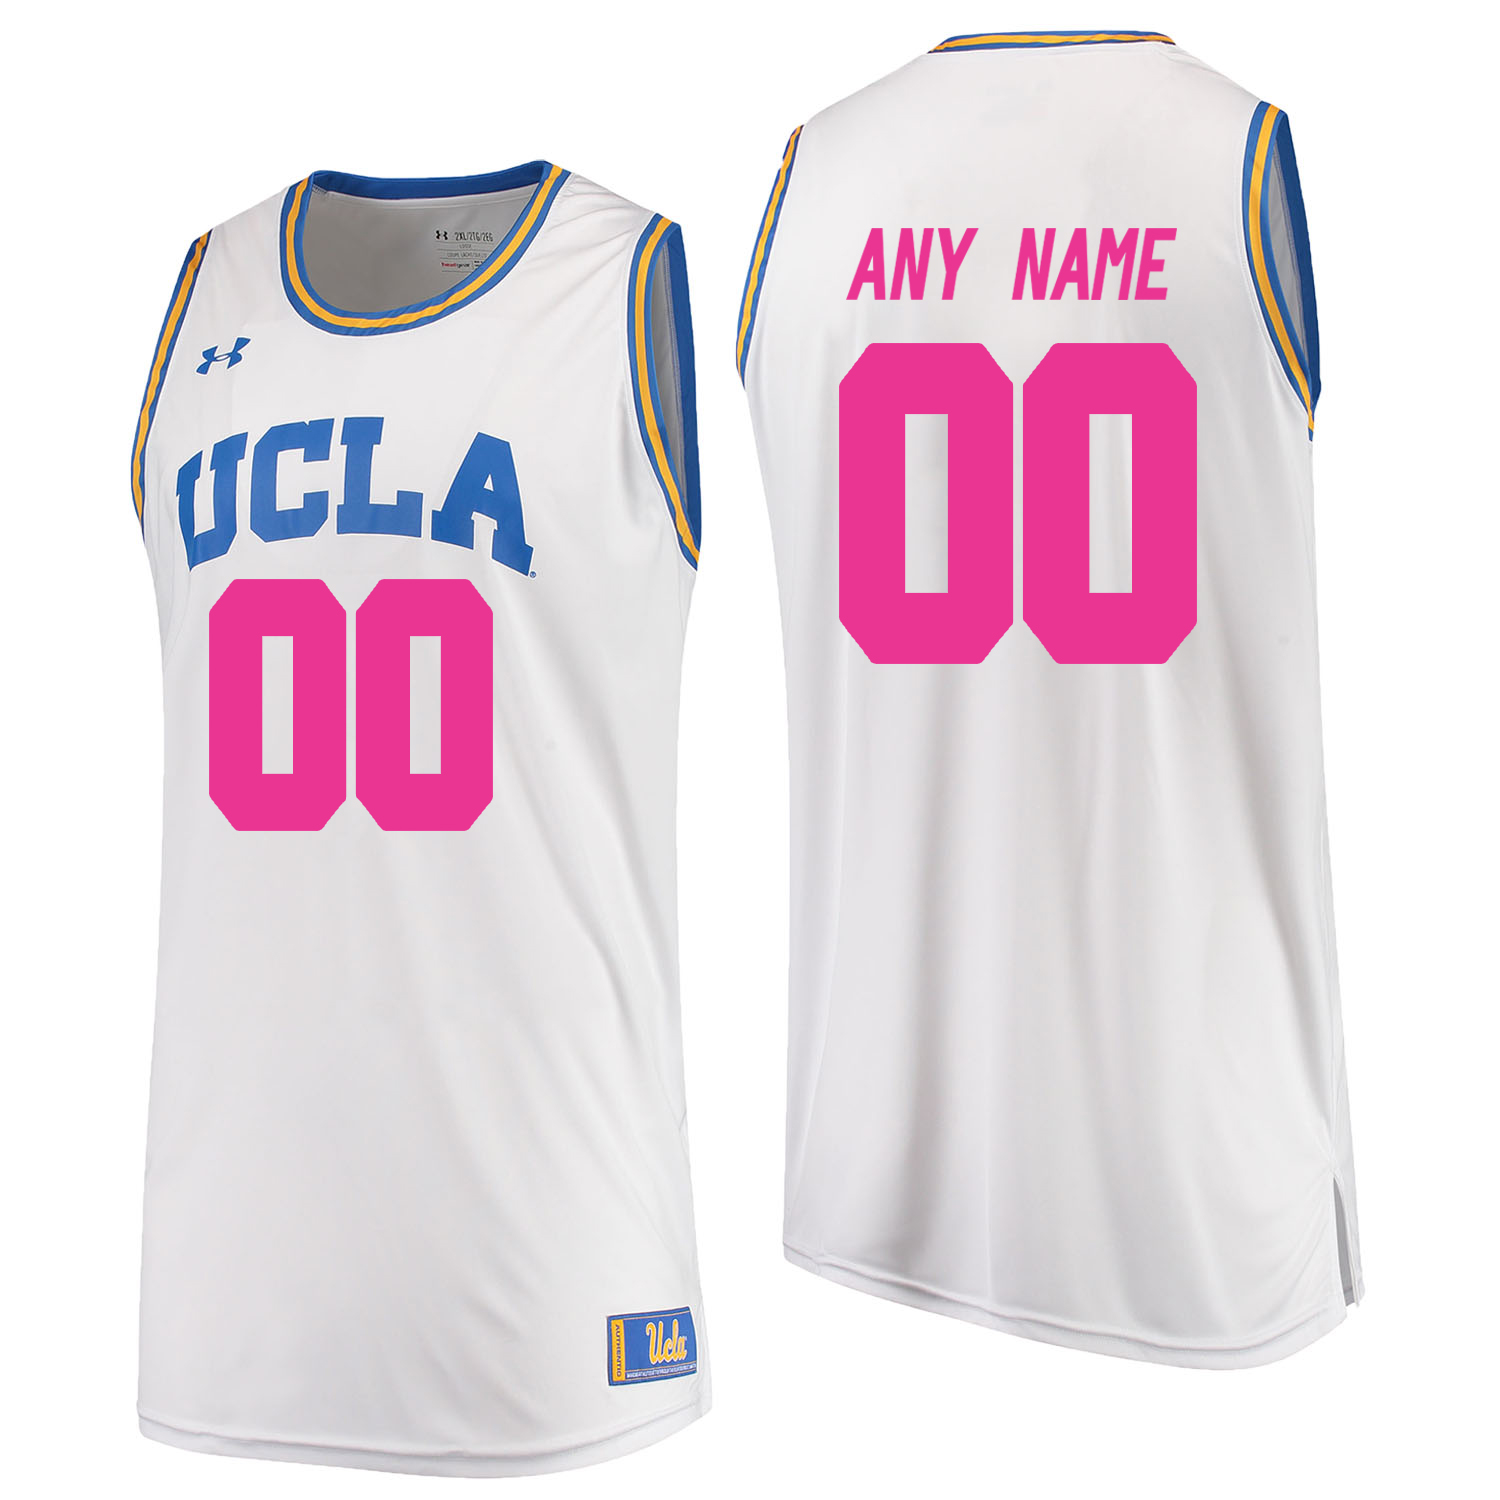 UCLA Bruins White 2018 Breast Cancer Awareness Men's Customized College Basketball Jersey